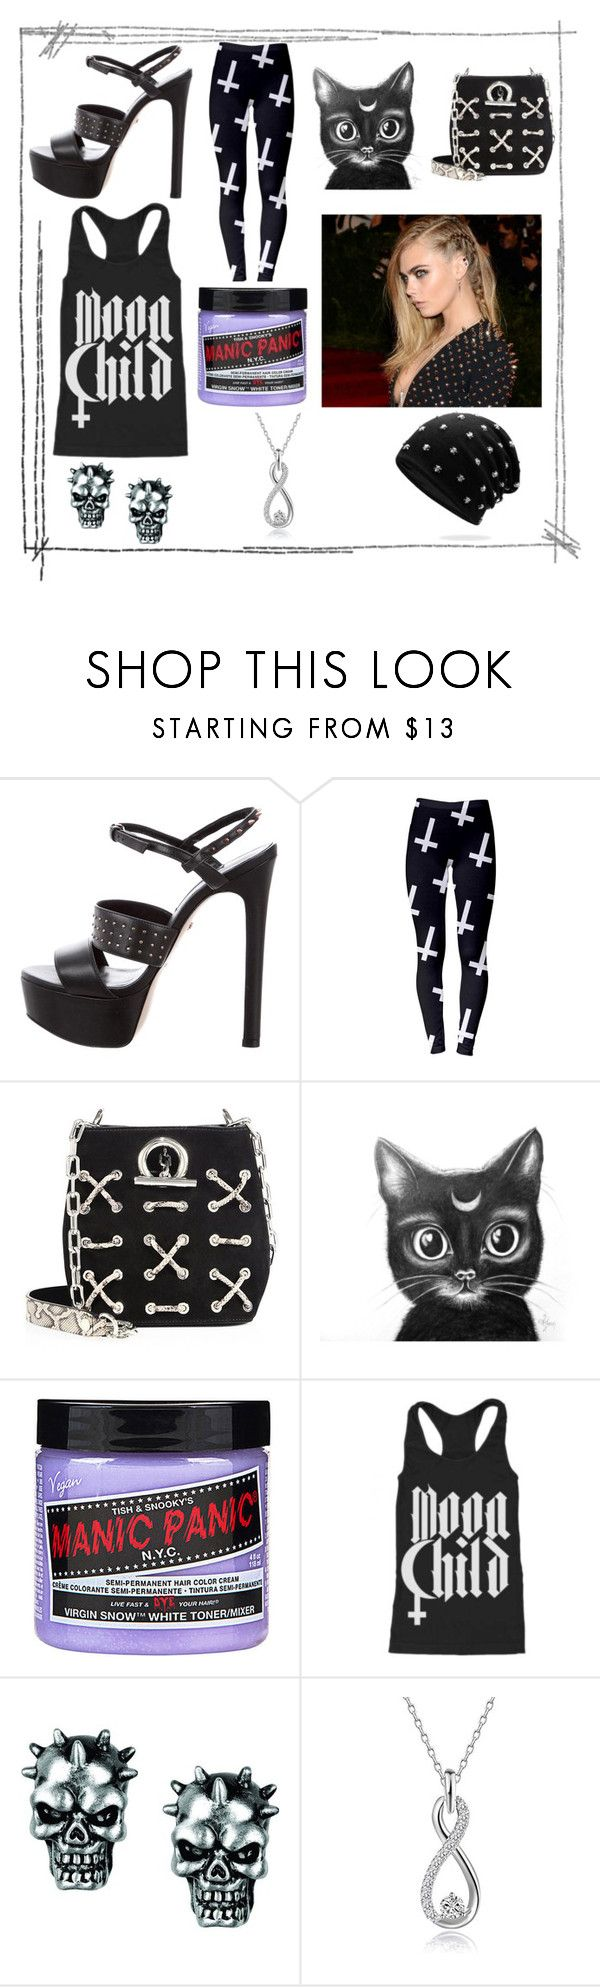 """Punk"" by anjalenaross ❤ liked on Polyvore featuring Ruthie Davis, GALA, Alexander Wang, Manic Panic NYC and Blackcraft"